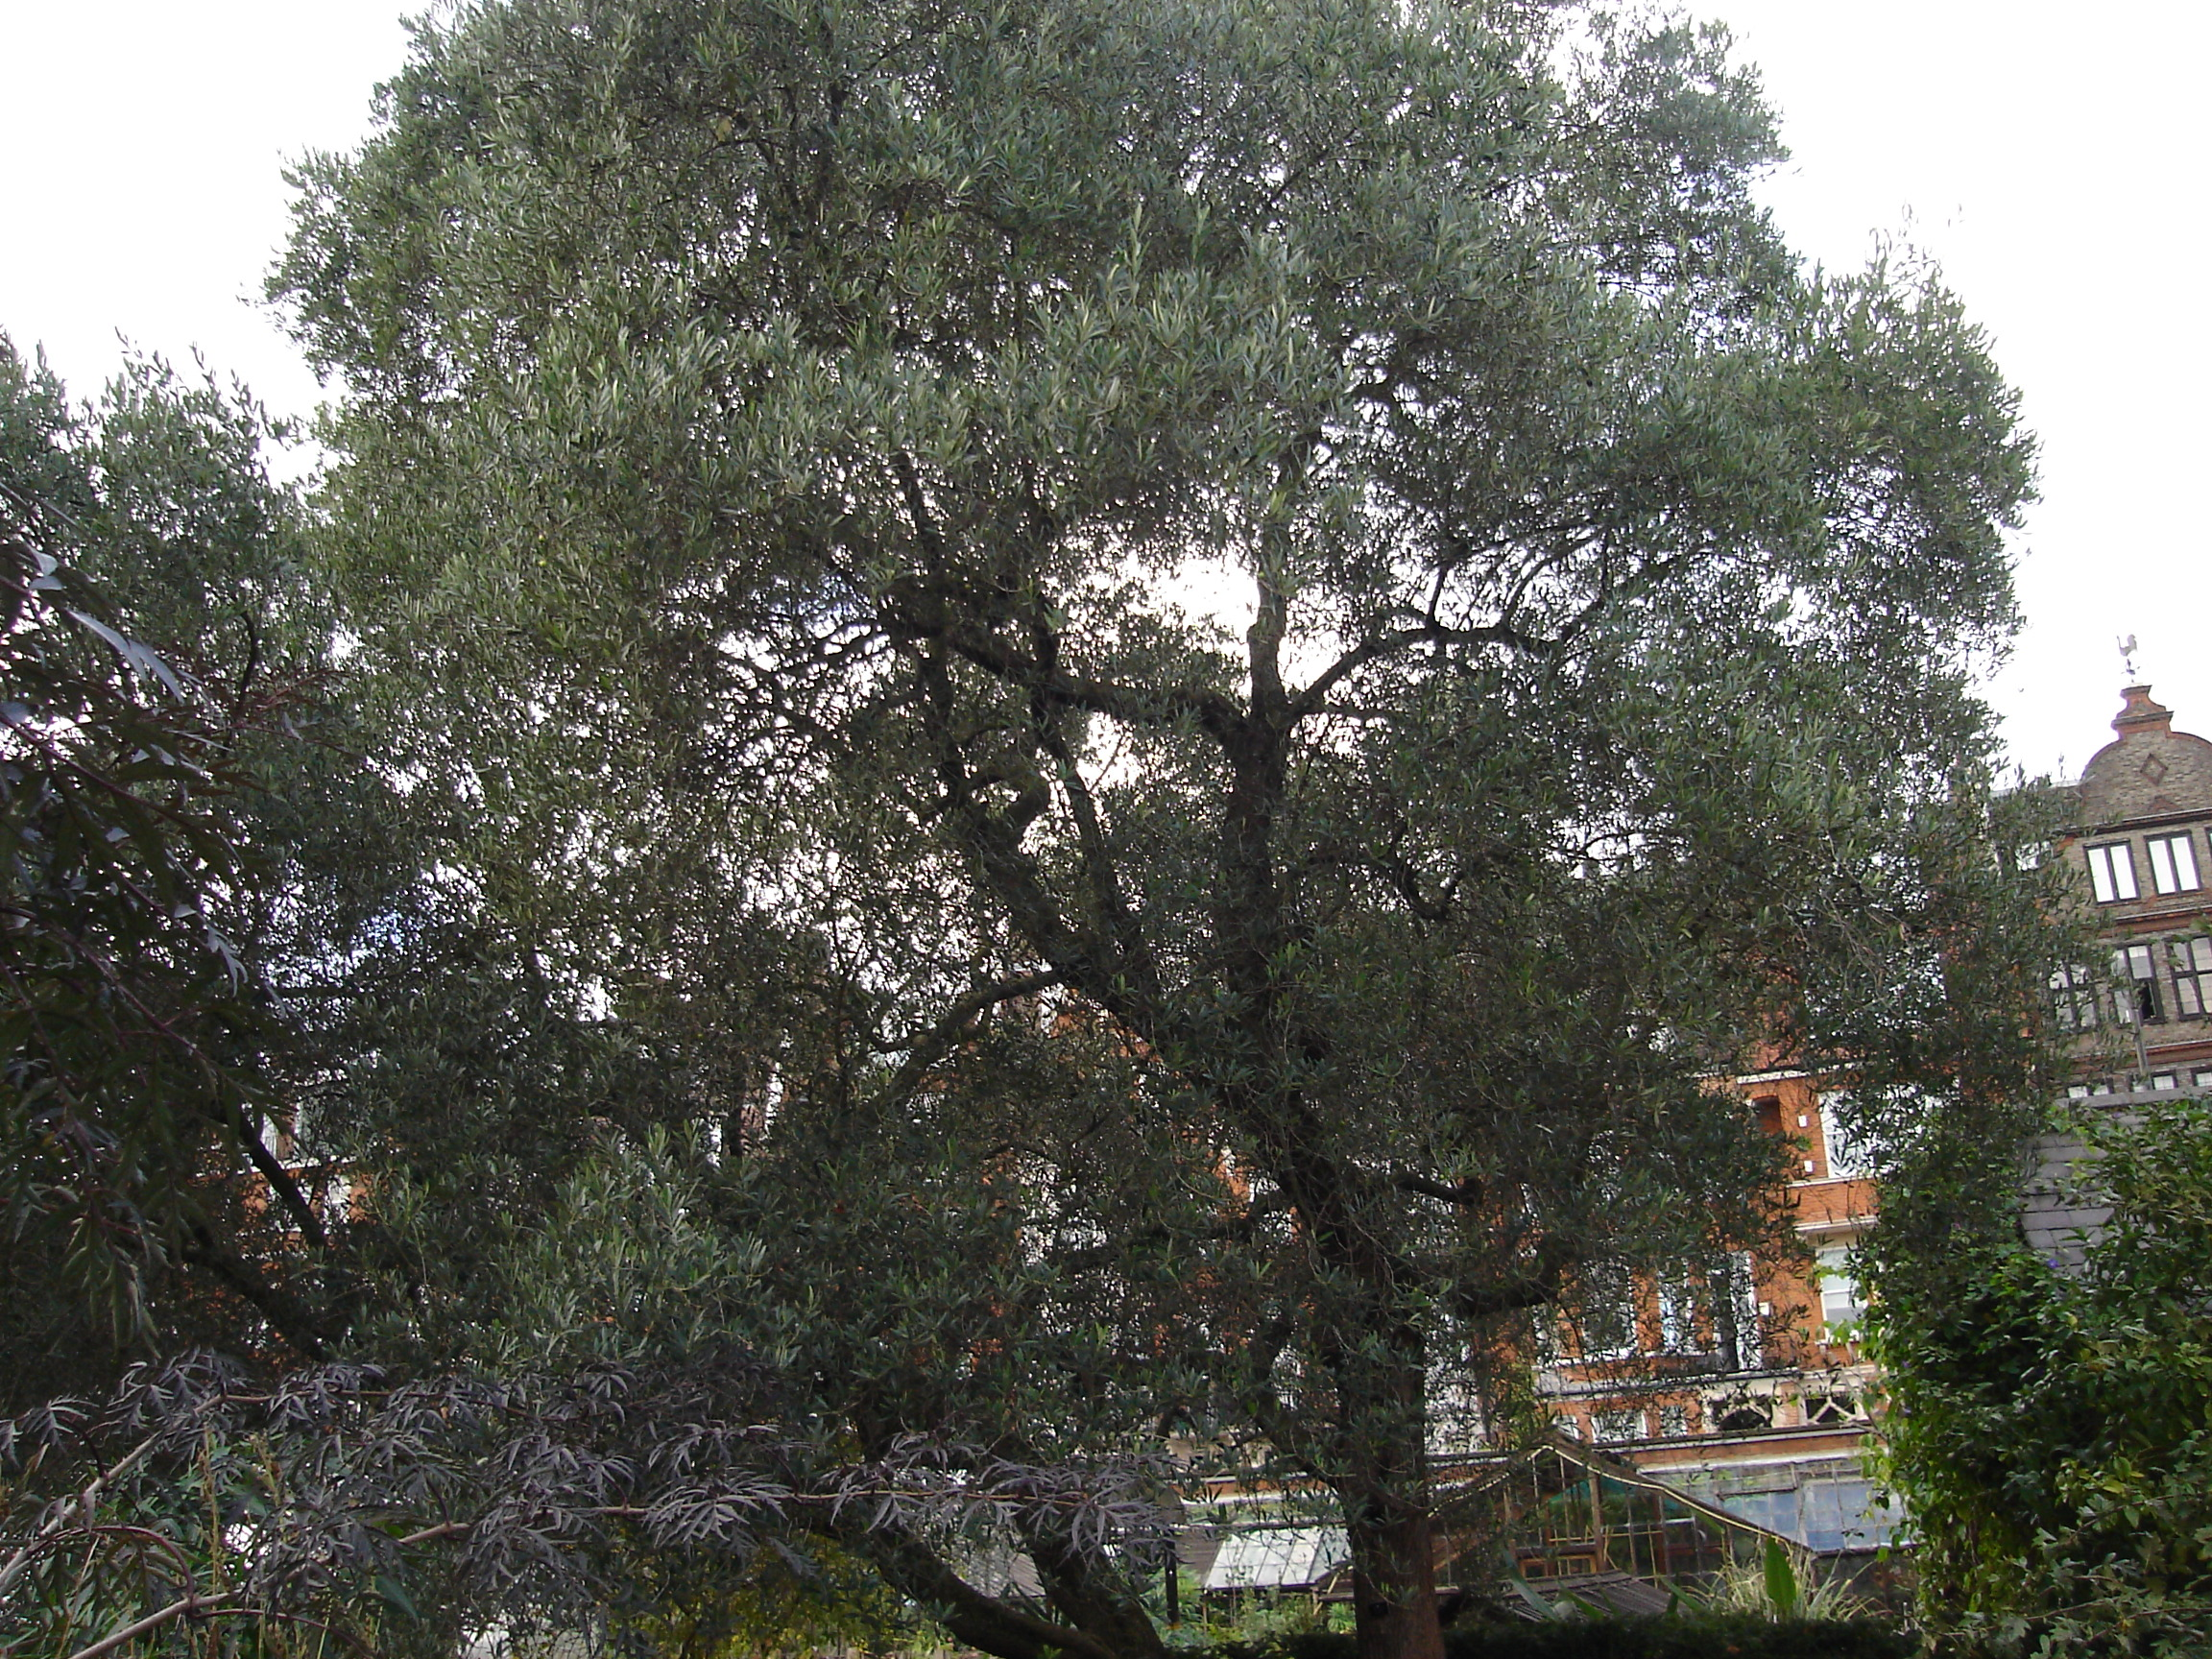 File:The Olive tree at Chelses Physic Garden.jpg - Wikimedia Commons